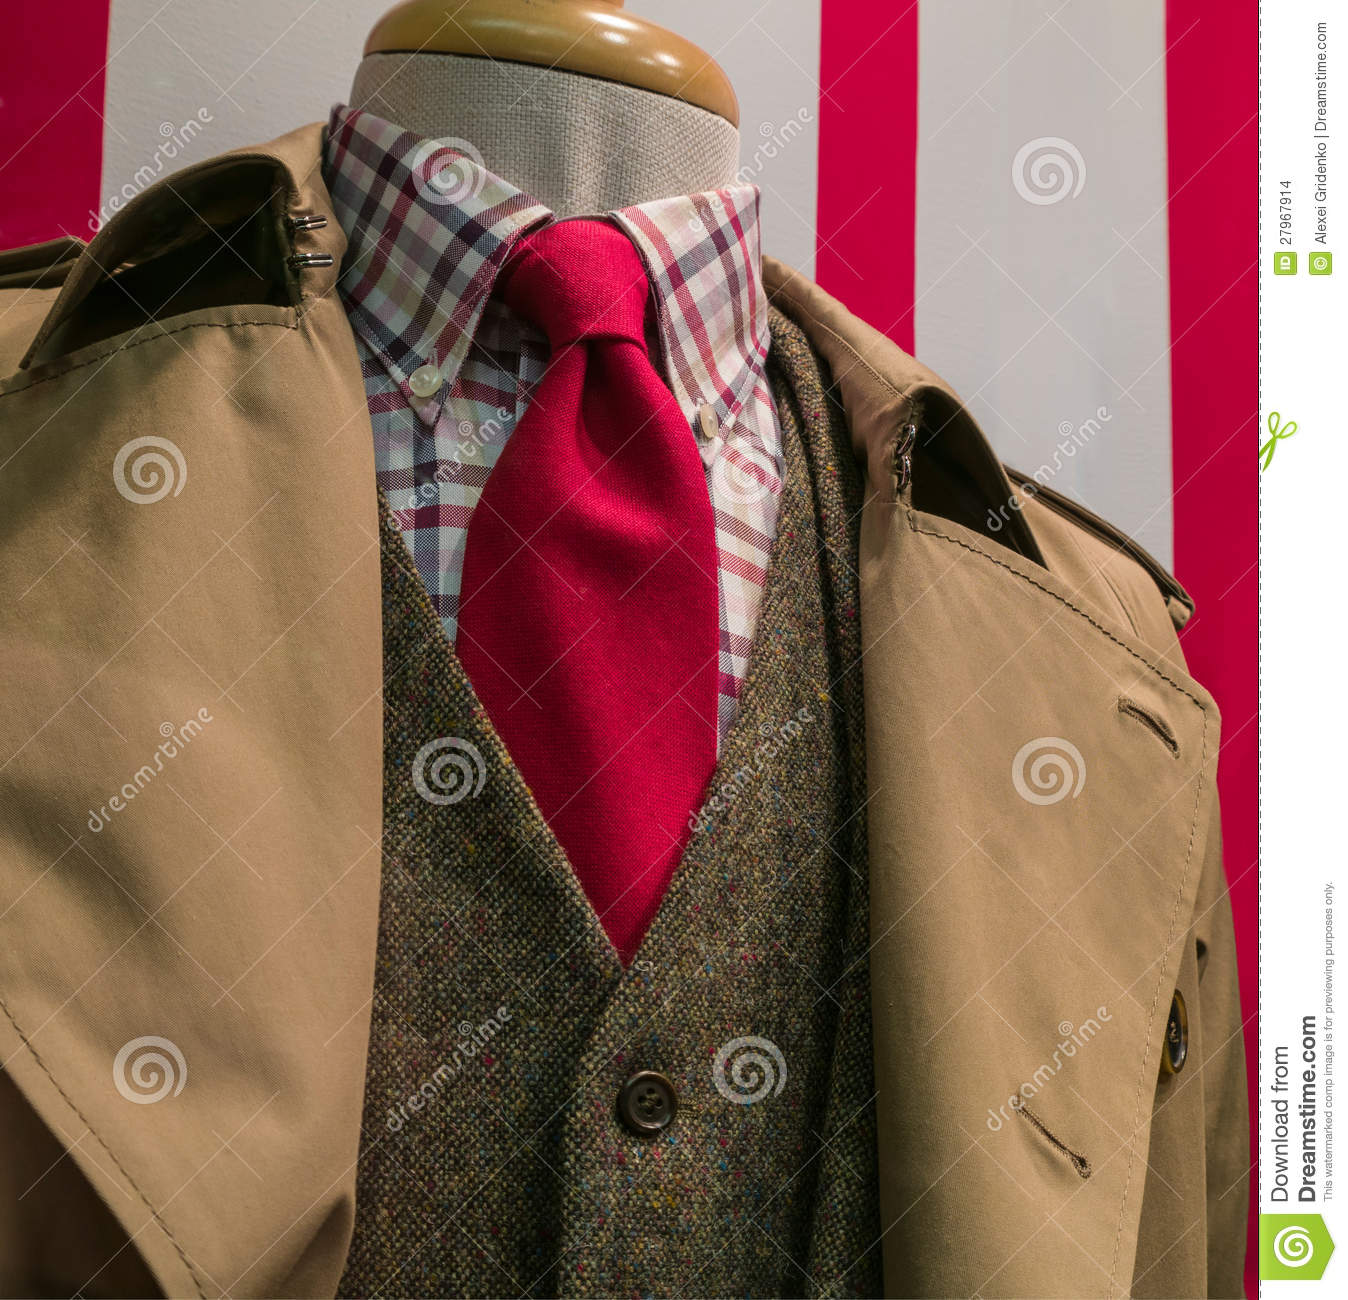 Brown Jacket With Checkered Shirt And Red Tie Stock Photo - Image